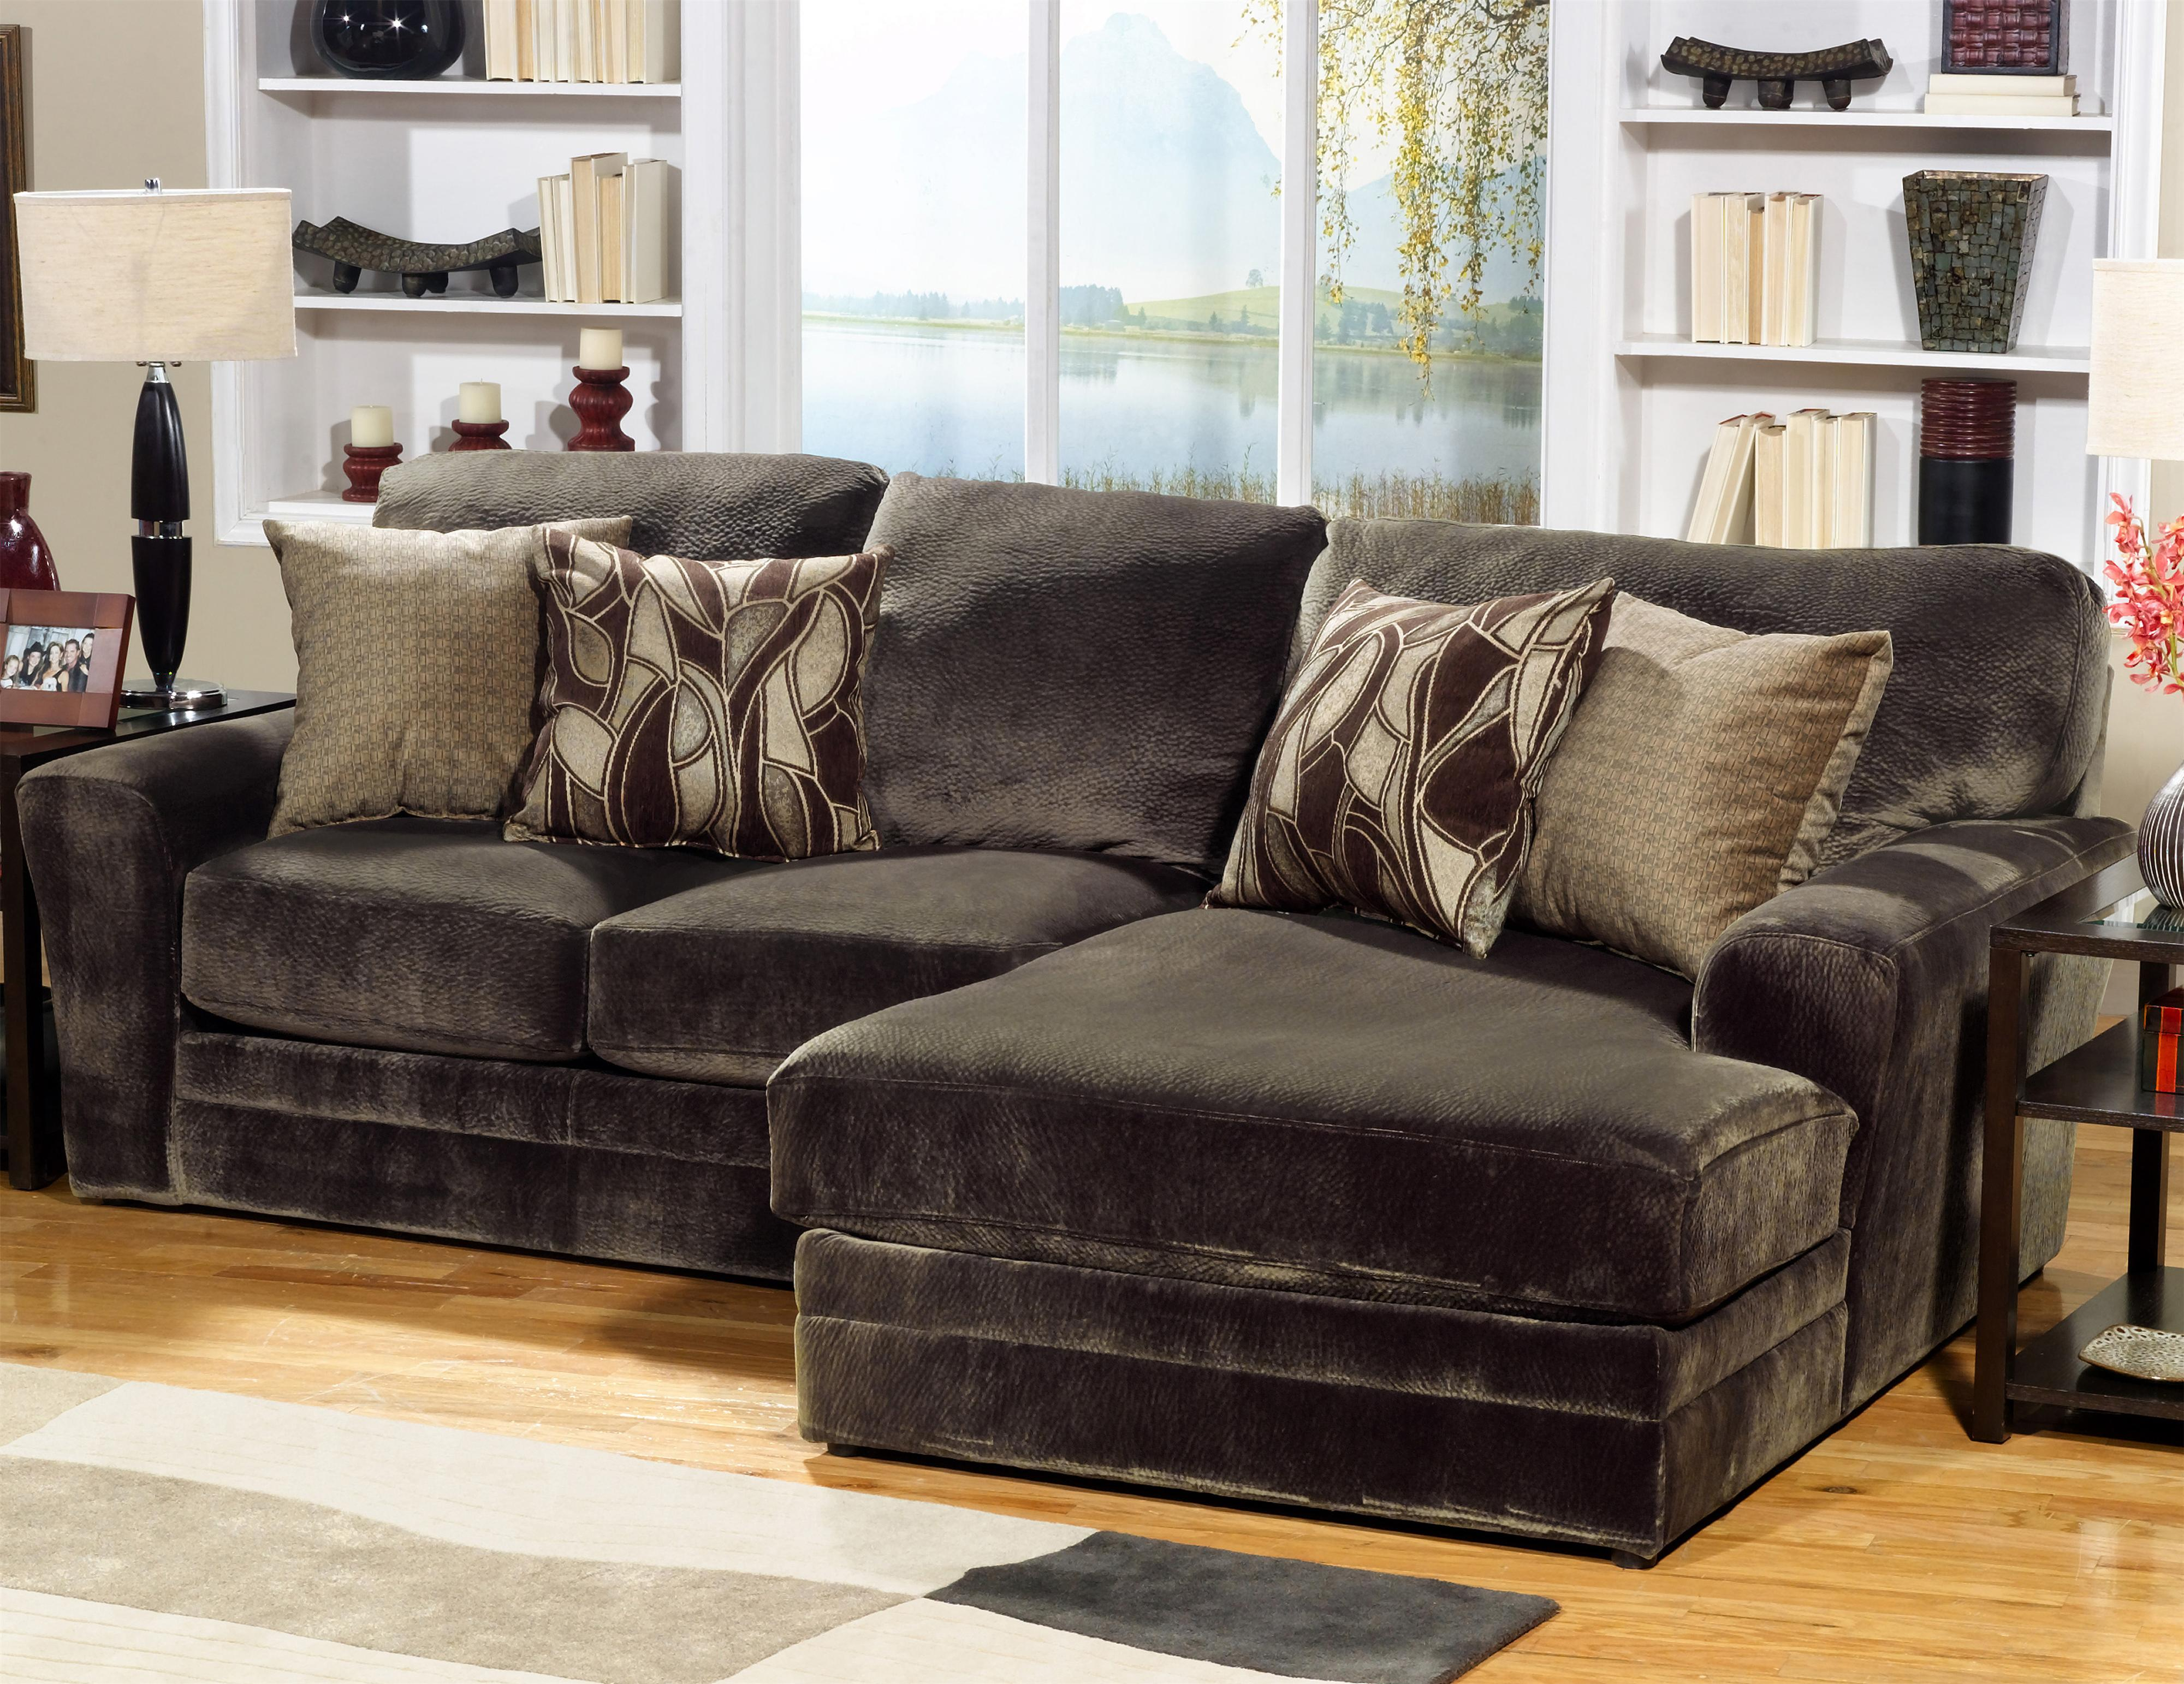 Remarkable 4377 Everest Sectional Sofa Short Links Chair Design For Home Short Linksinfo